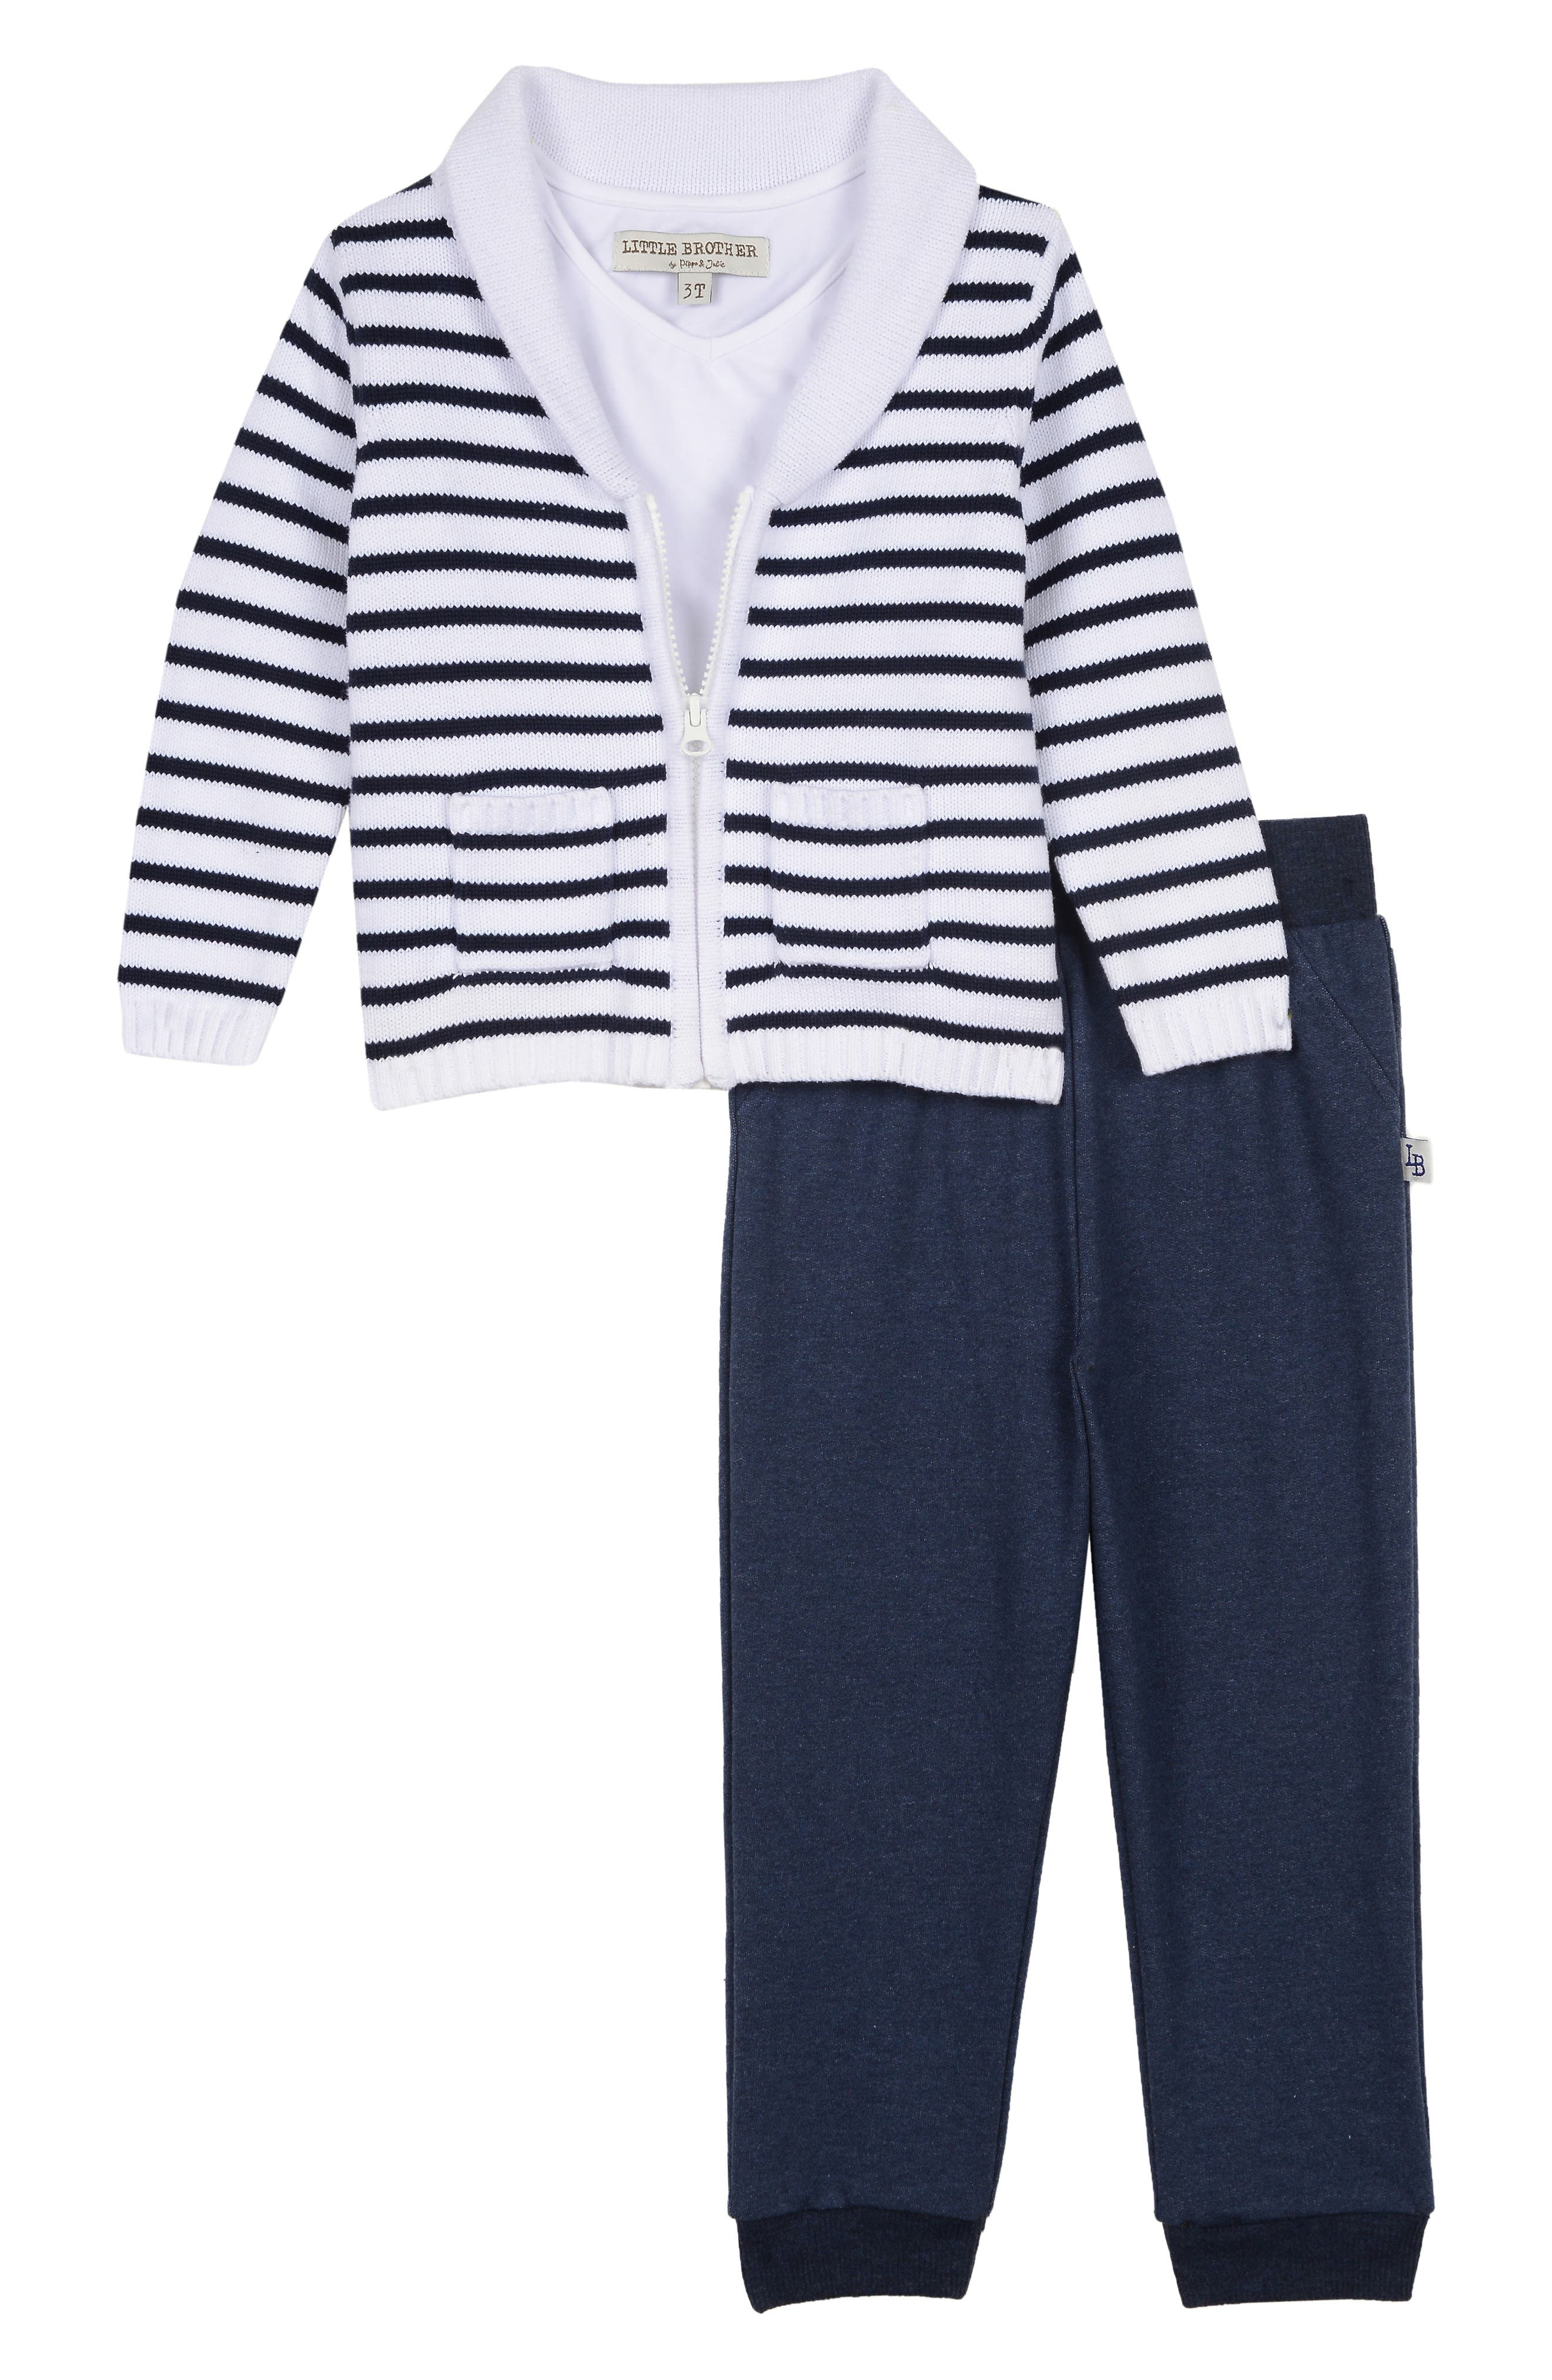 LITTLE BROTHER BY PIPPA & JULIE, Sweater, T-Shirt & Pants Set, Main thumbnail 1, color, NAVY/ WHITE